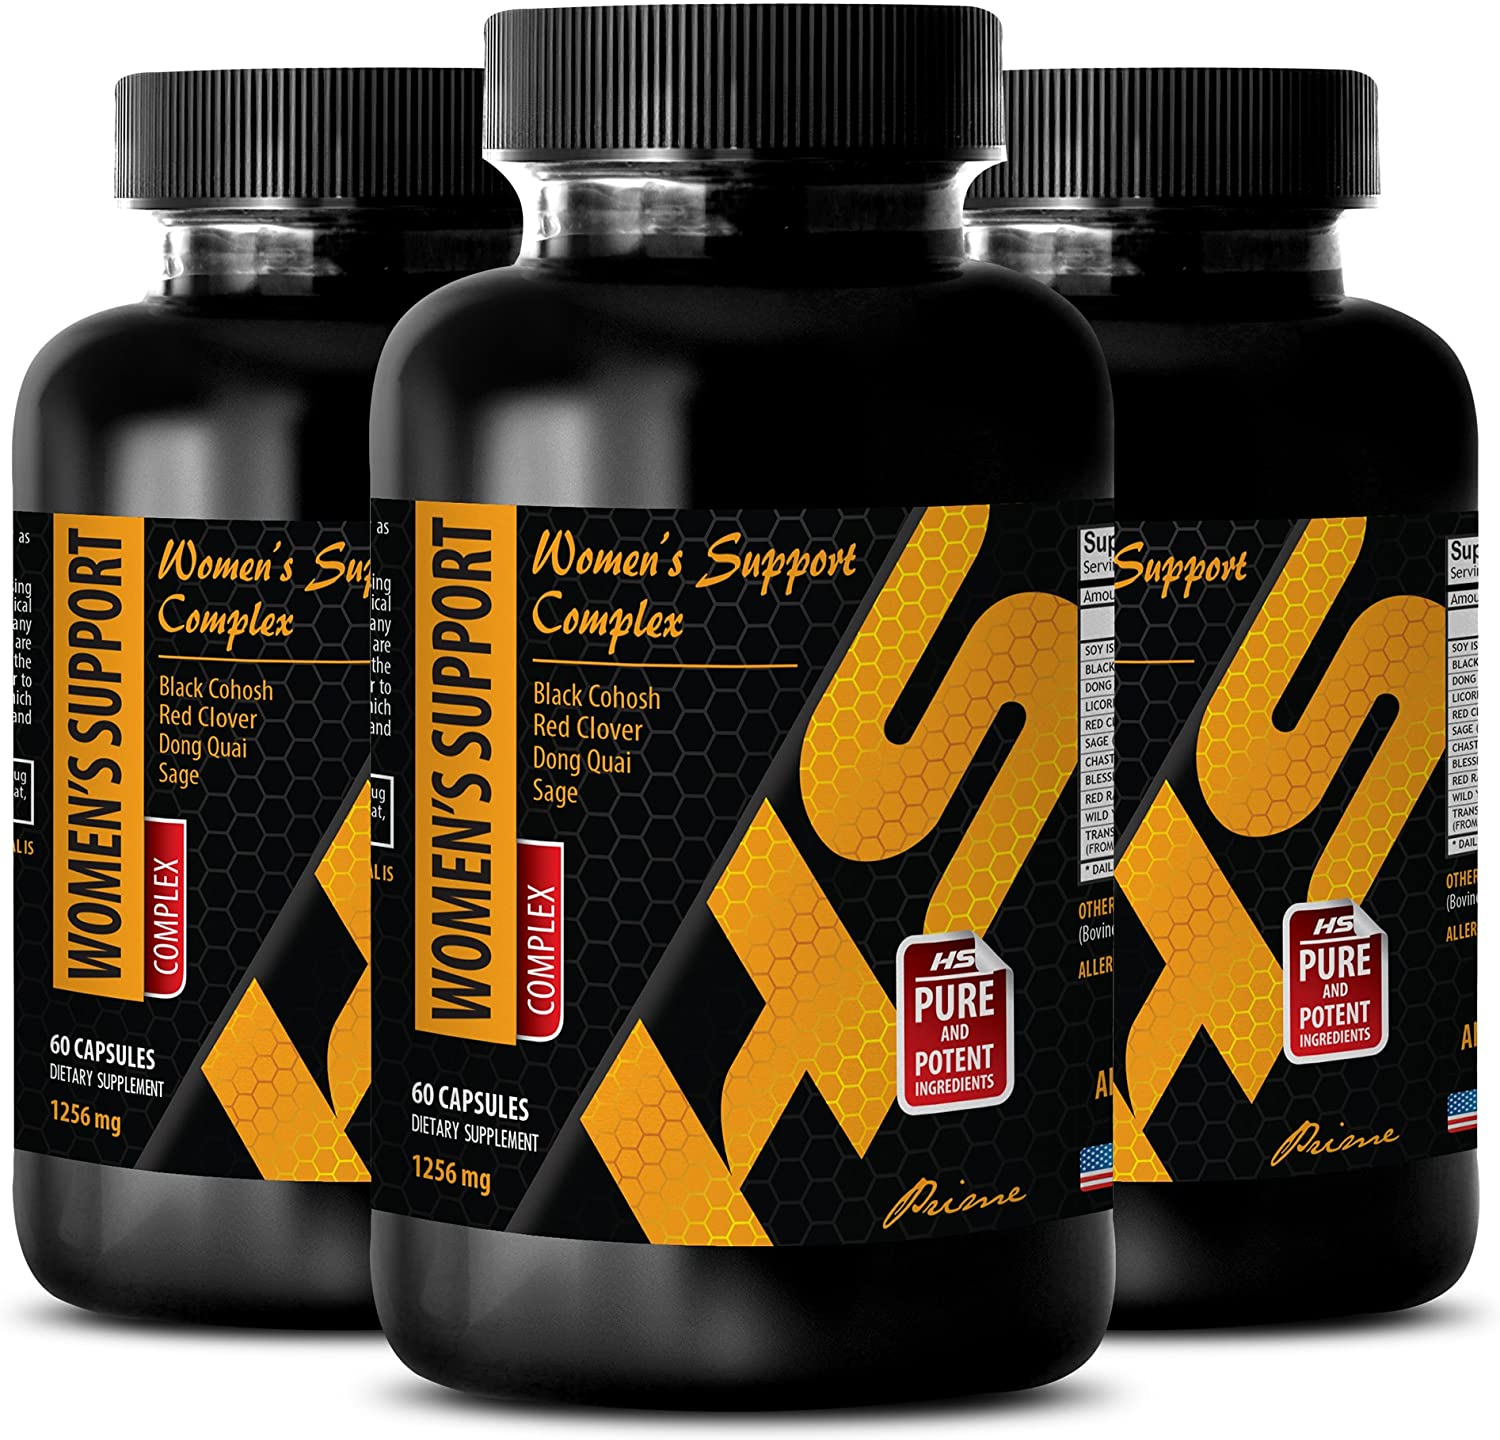 Max 73% OFF Immune System Recovery Plan - Selling and selling 1250 Complex Support Women's mg